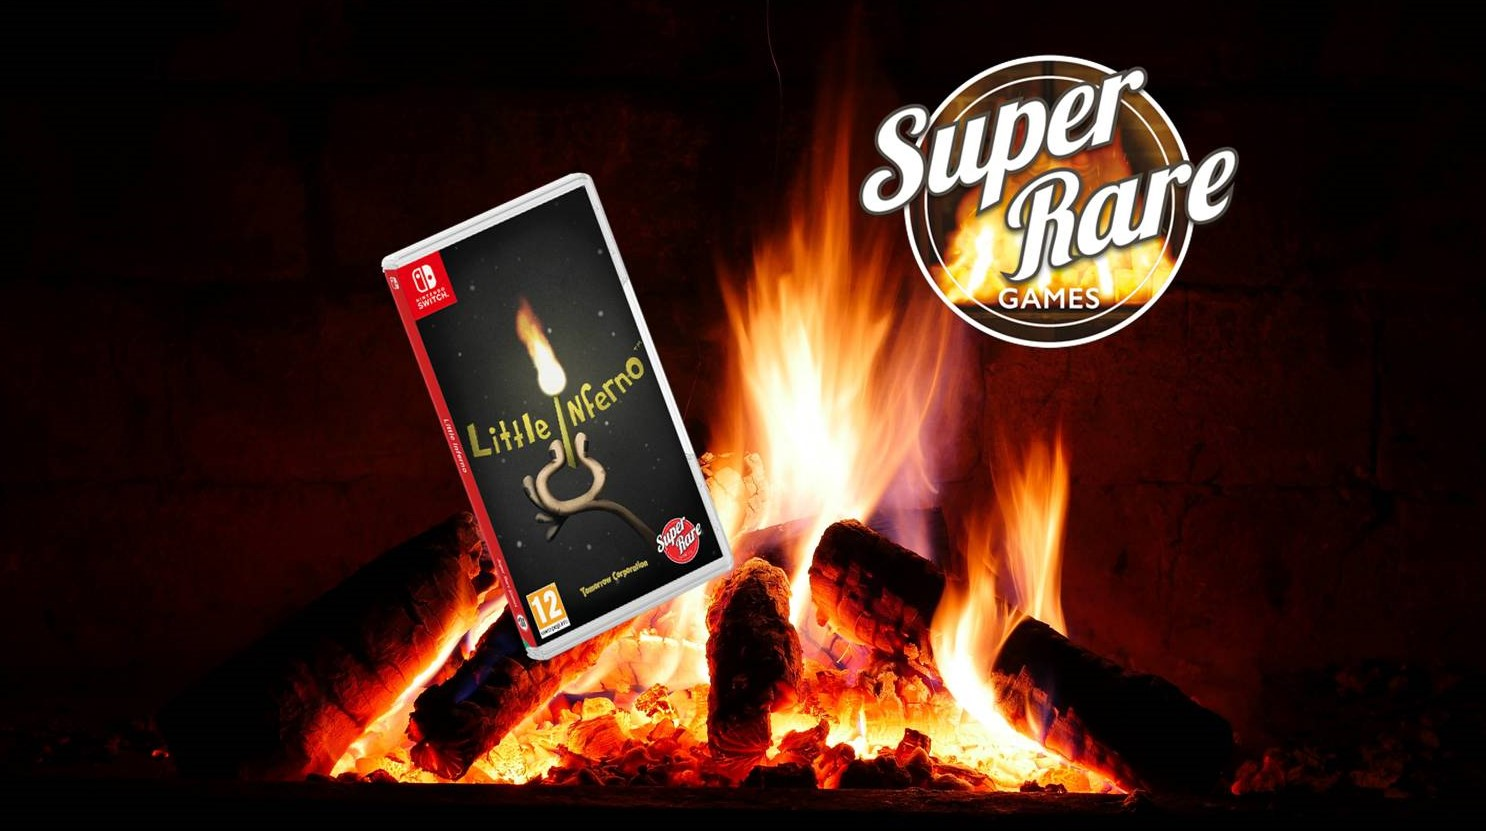 Contest: You'll burn with desire for this physical Switch copy of Little Inferno from Super Rare Games screenshot